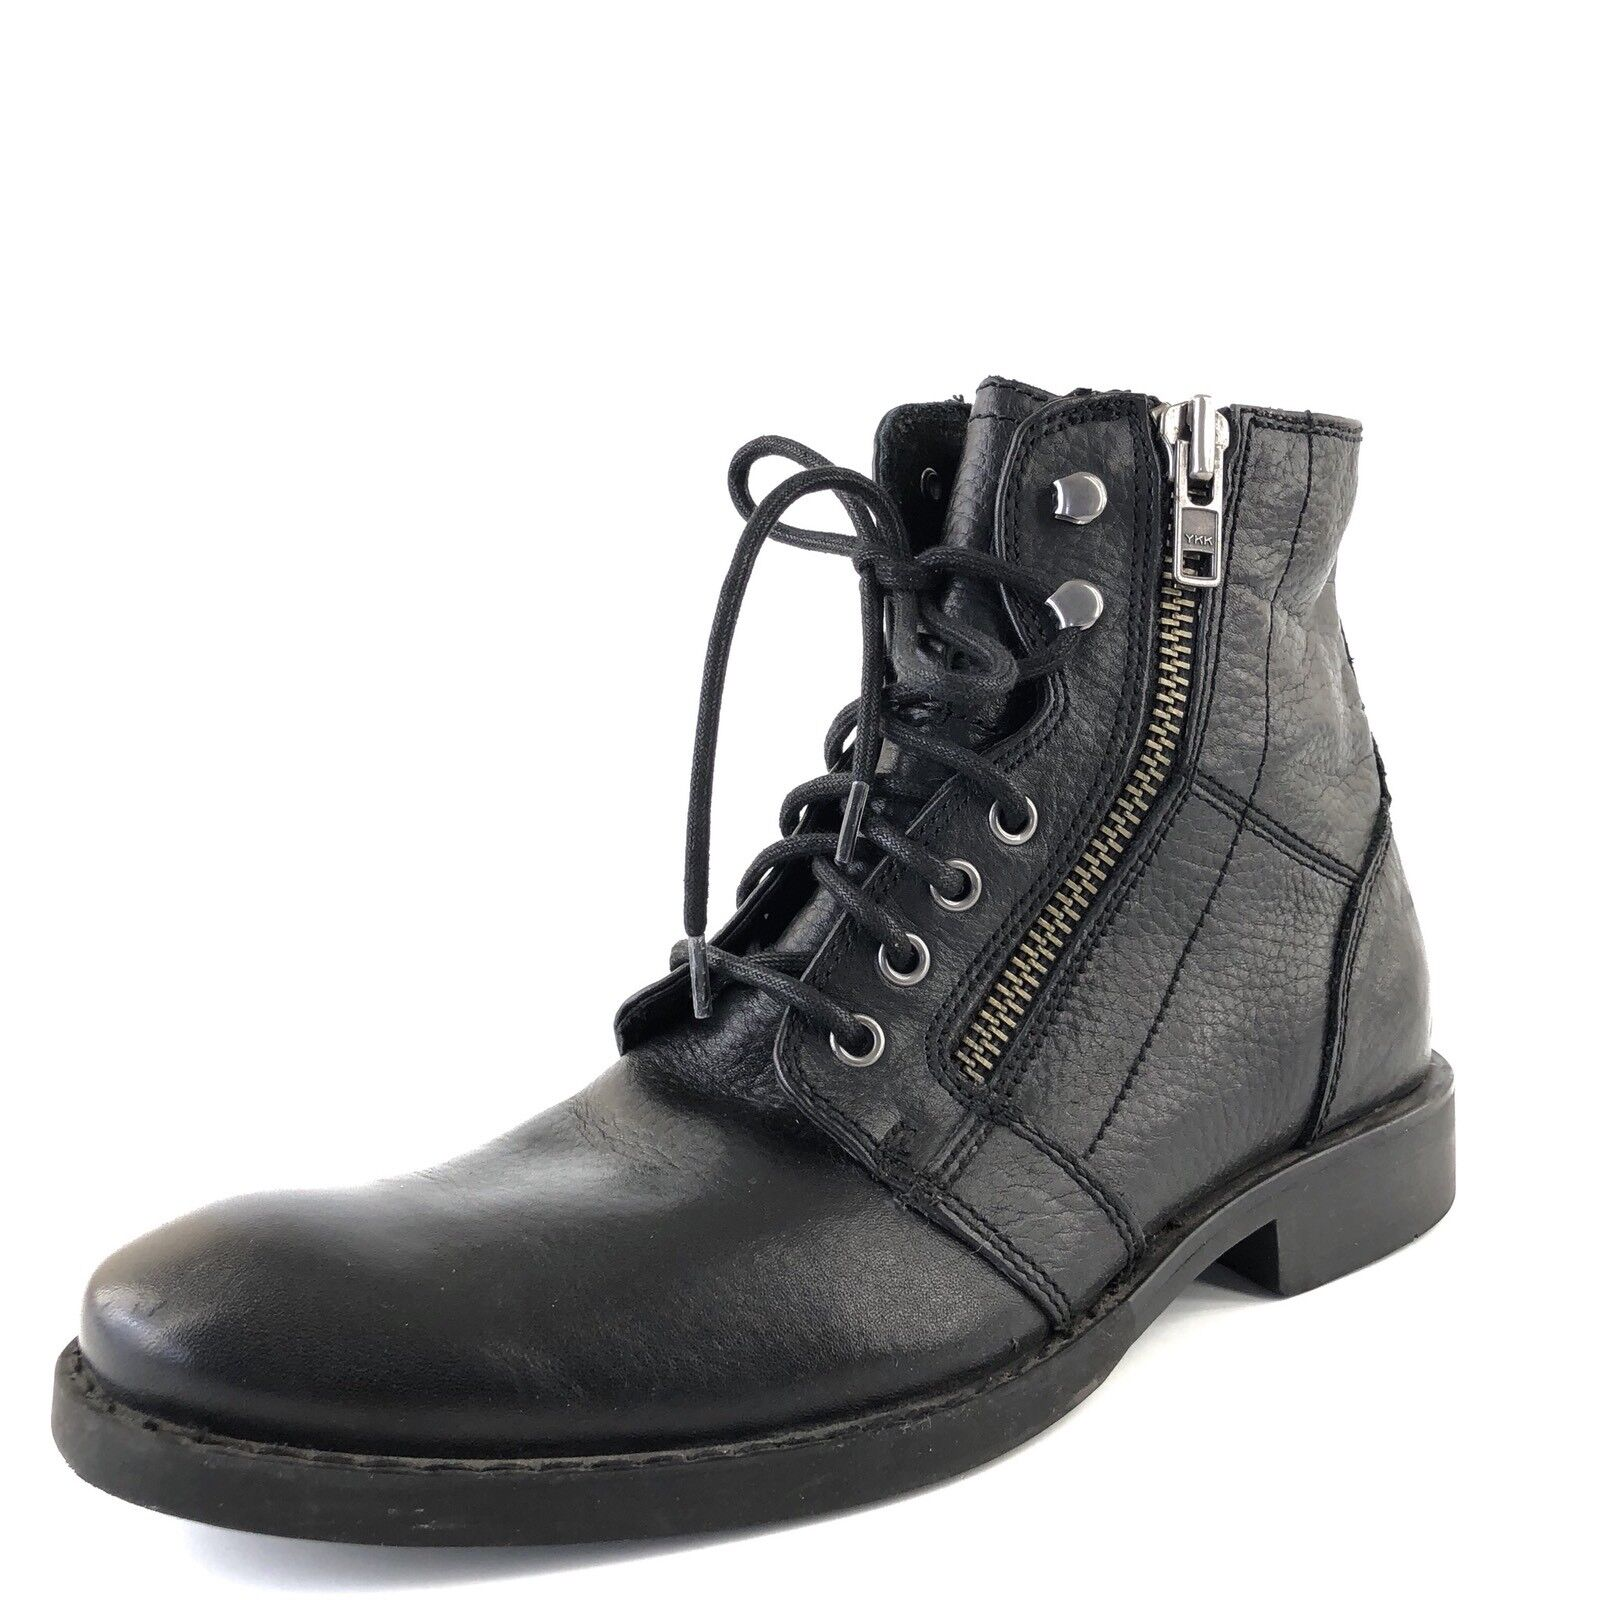 The Rail 'Derek' Black Leather Cap Toe Lace Up Combat Boots Men's Size 41 M